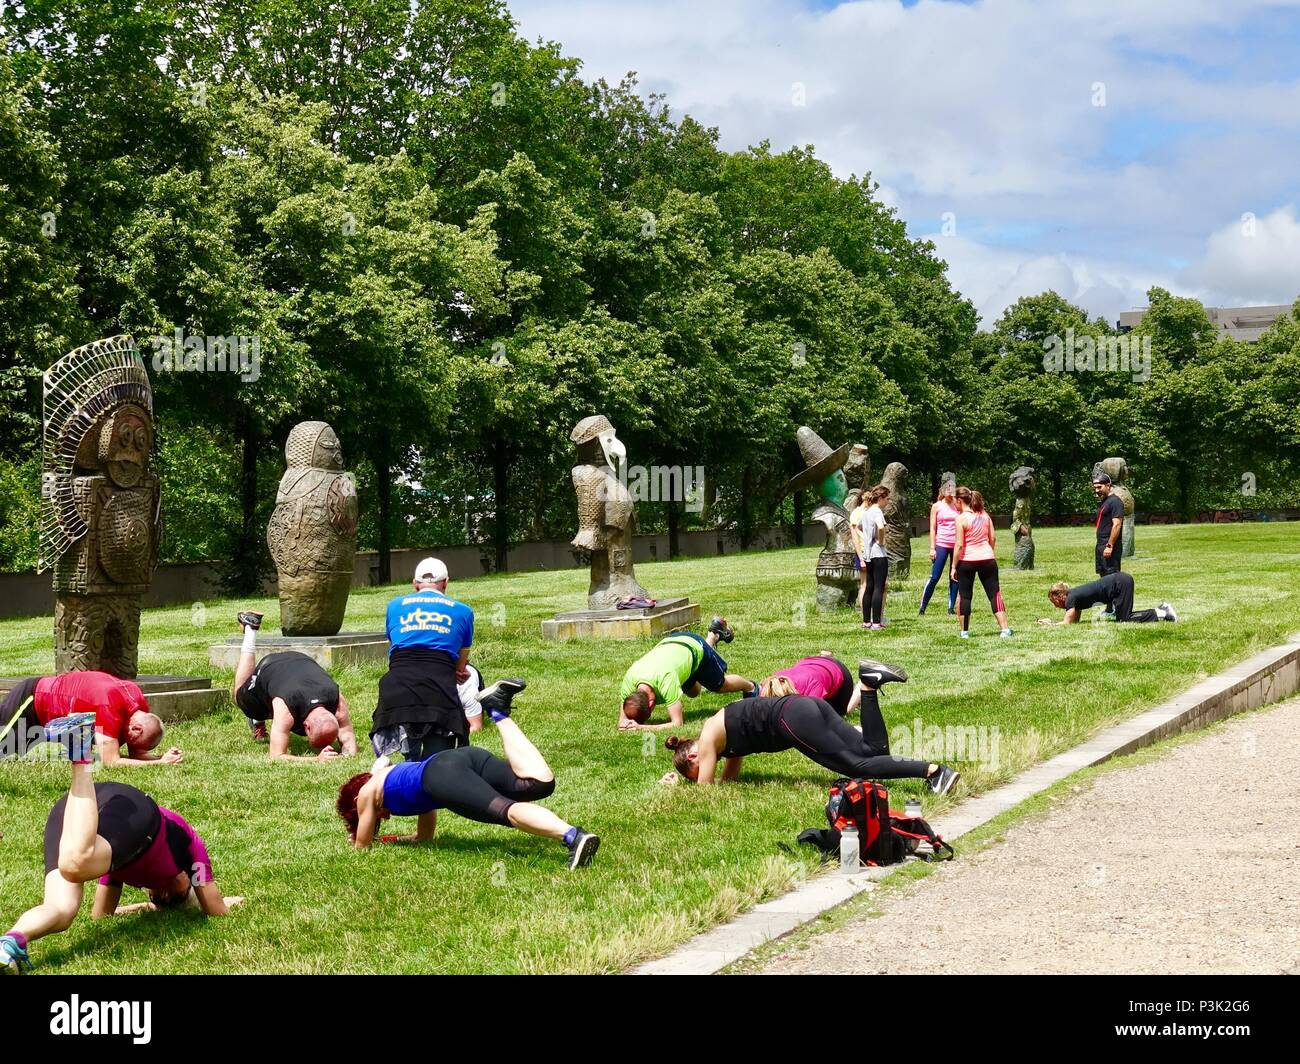 """Fitness class works out among statues of the """"Children of the World,"""" any artist Rachid Khimoune, Bercy Park, Paris, France Stock Photo"""